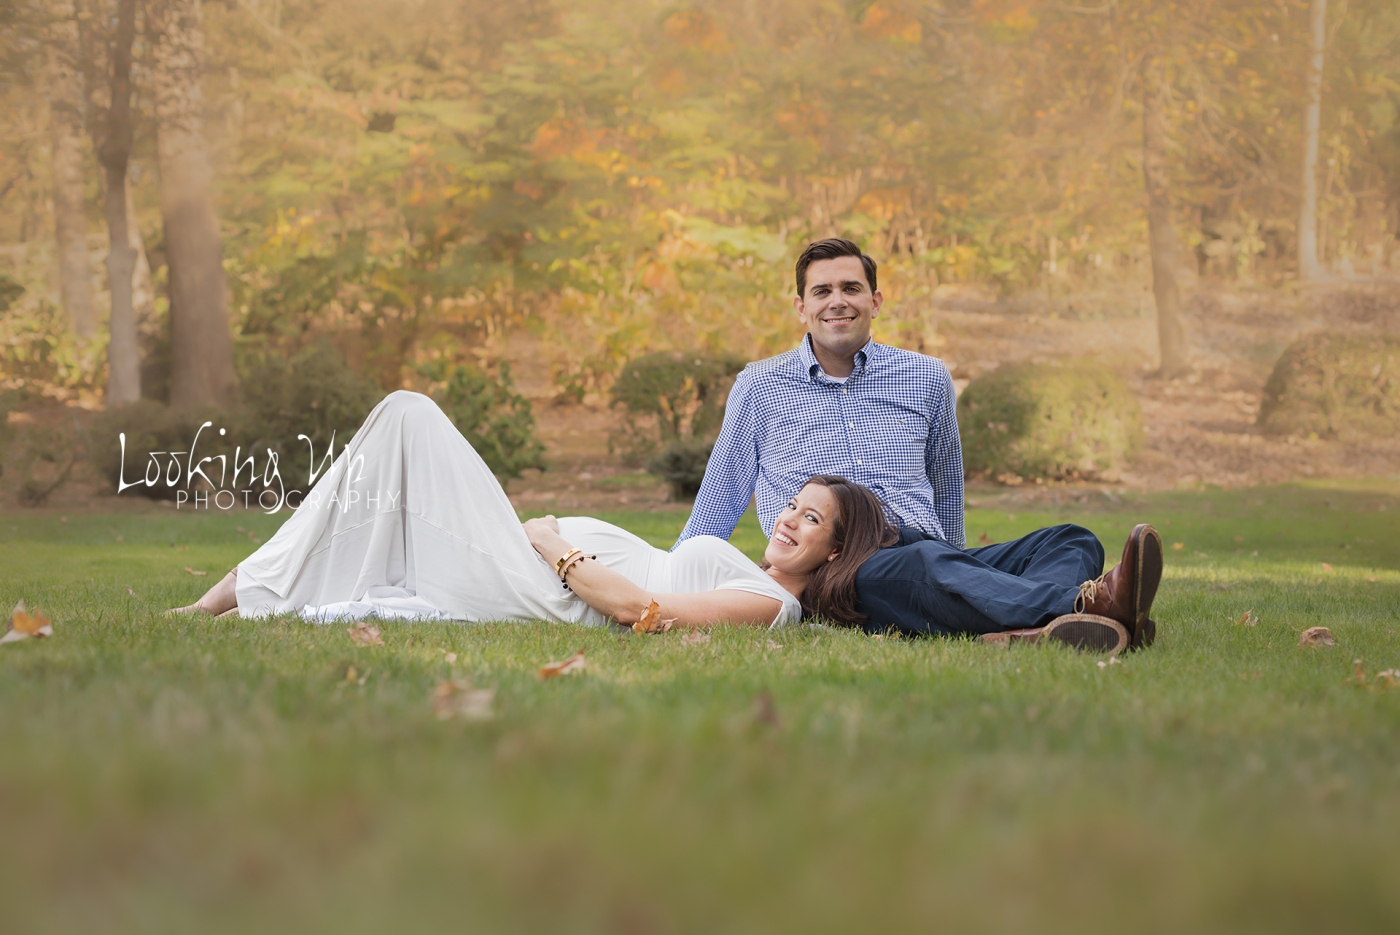 Expecting mom and dad relaxing in the grass with beautiful yellow fall colors for outdoor posed maternity session